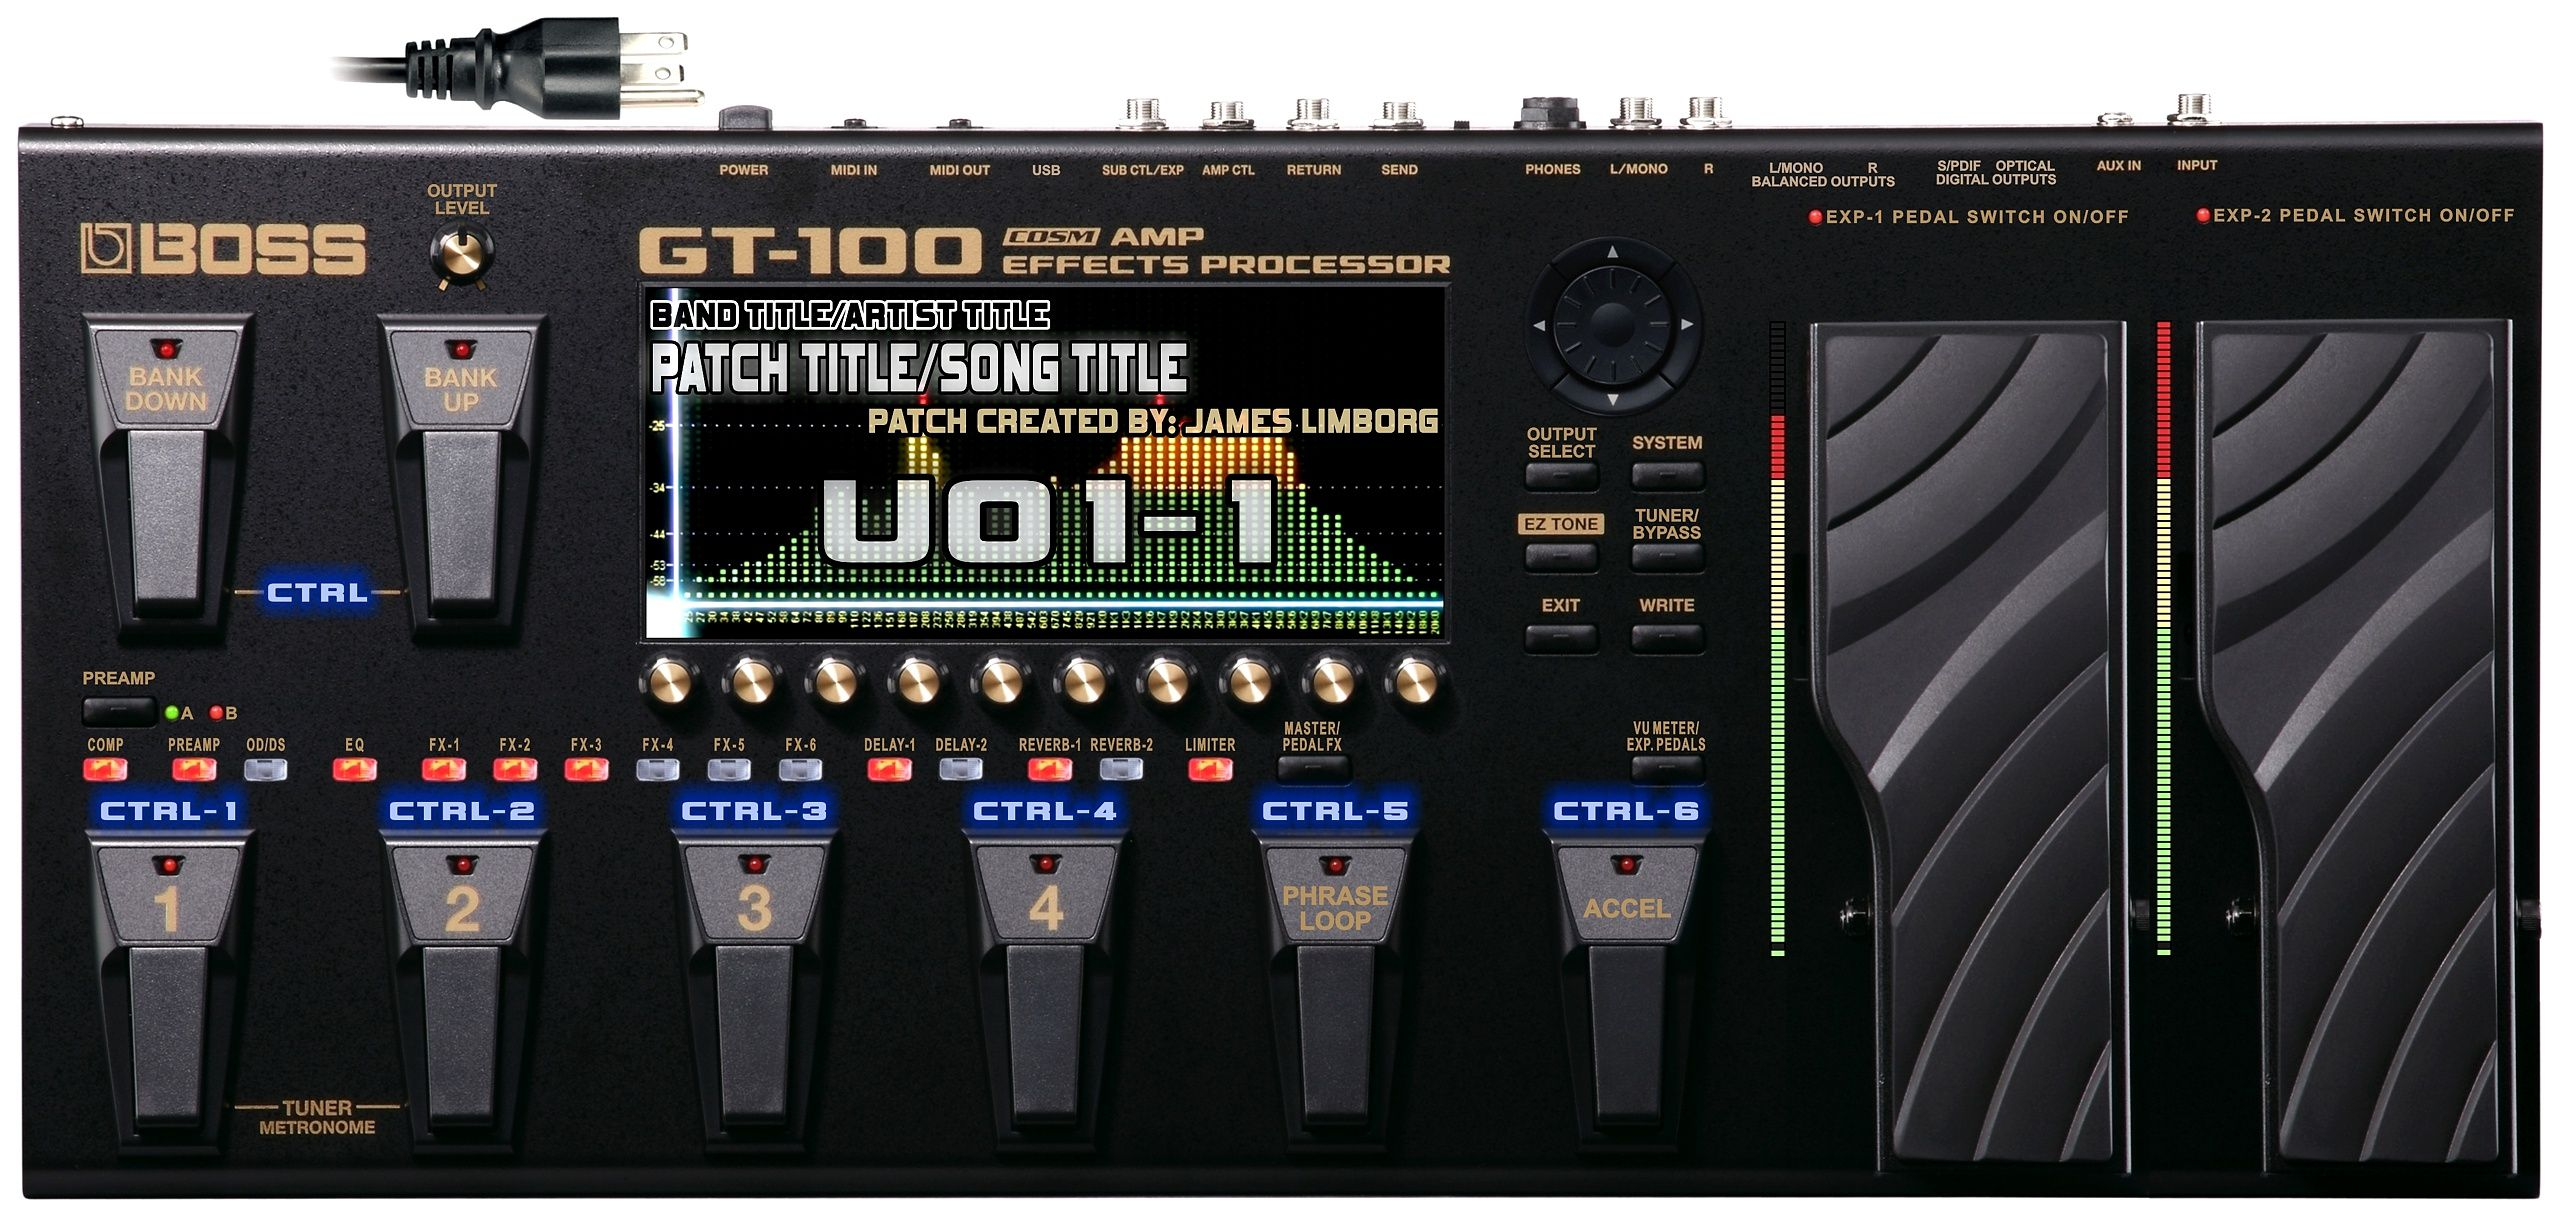 Graphic design idea by james limborg of the roland boss gt 100 graphic design idea by james limborg of the roland boss gt 100 guitar multi effects processor fandeluxe Images